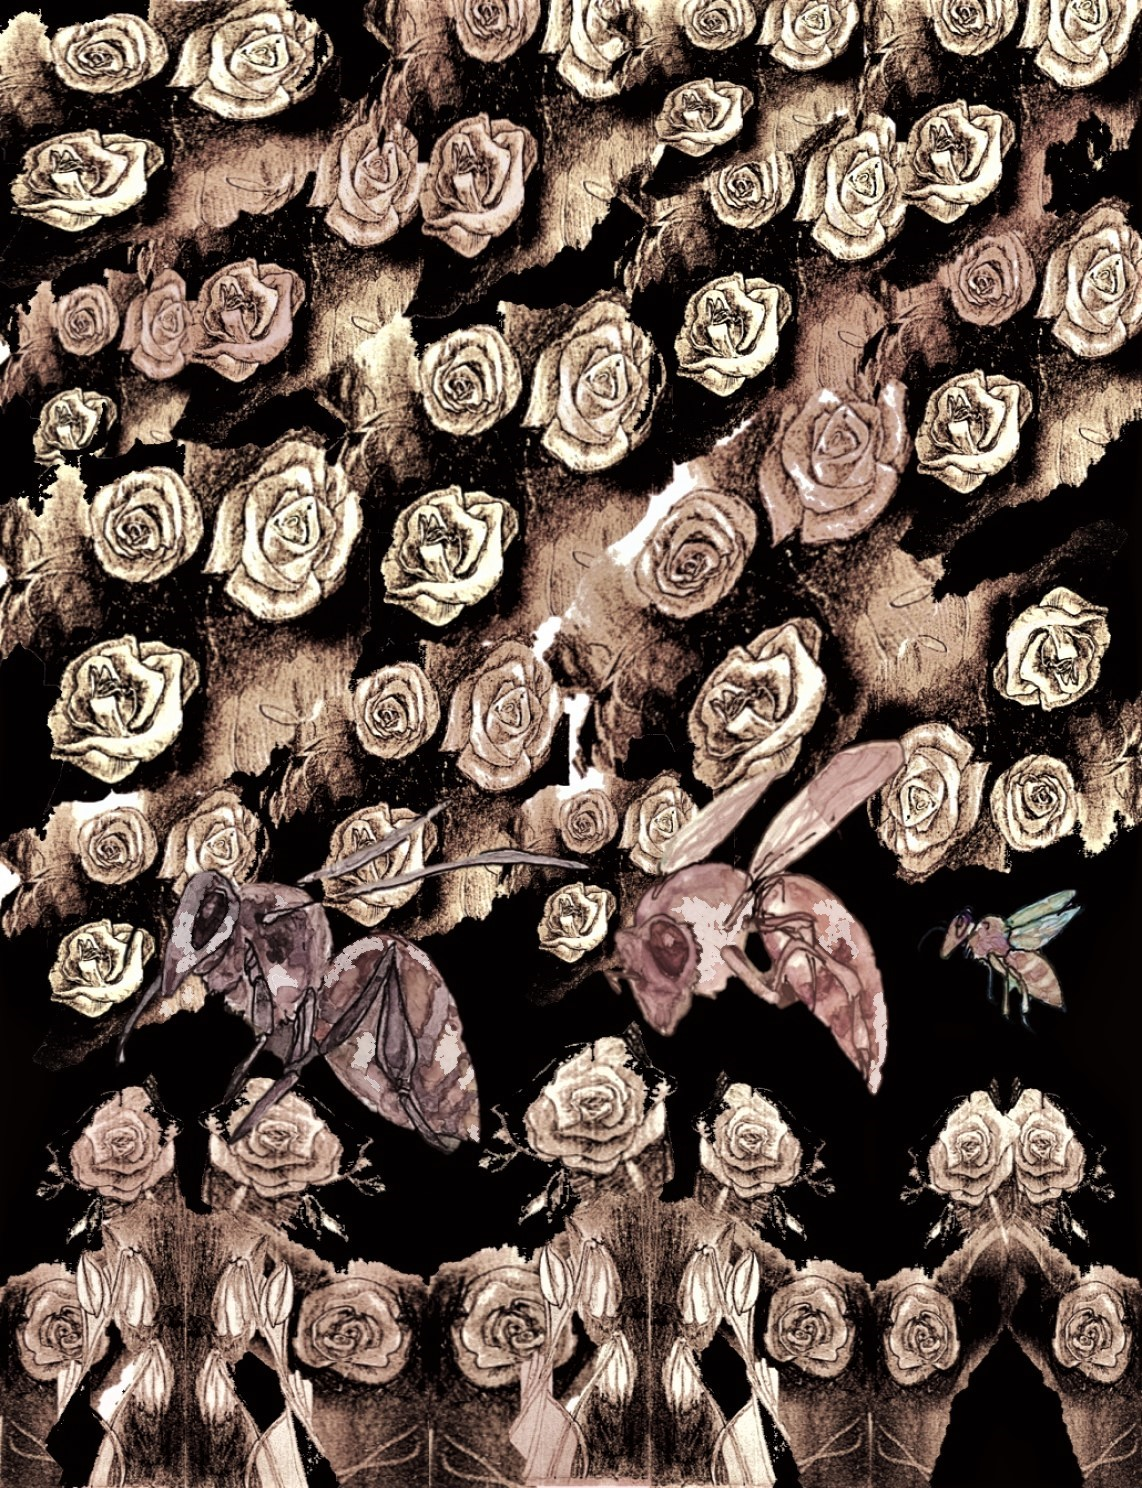 Bees-among-the-roses